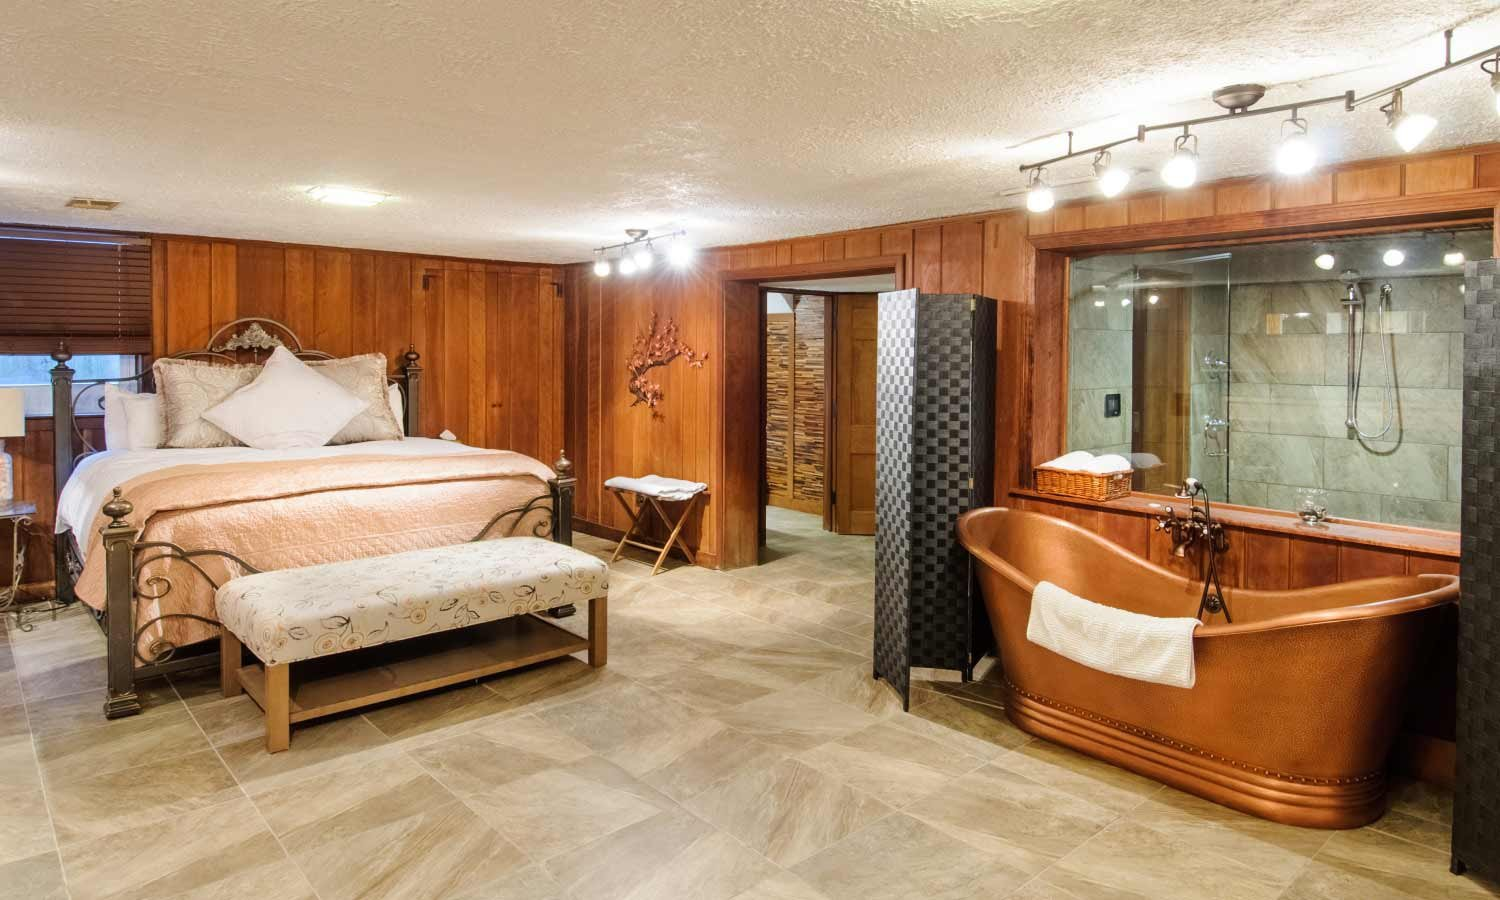 Bedroom with copper soaking tub